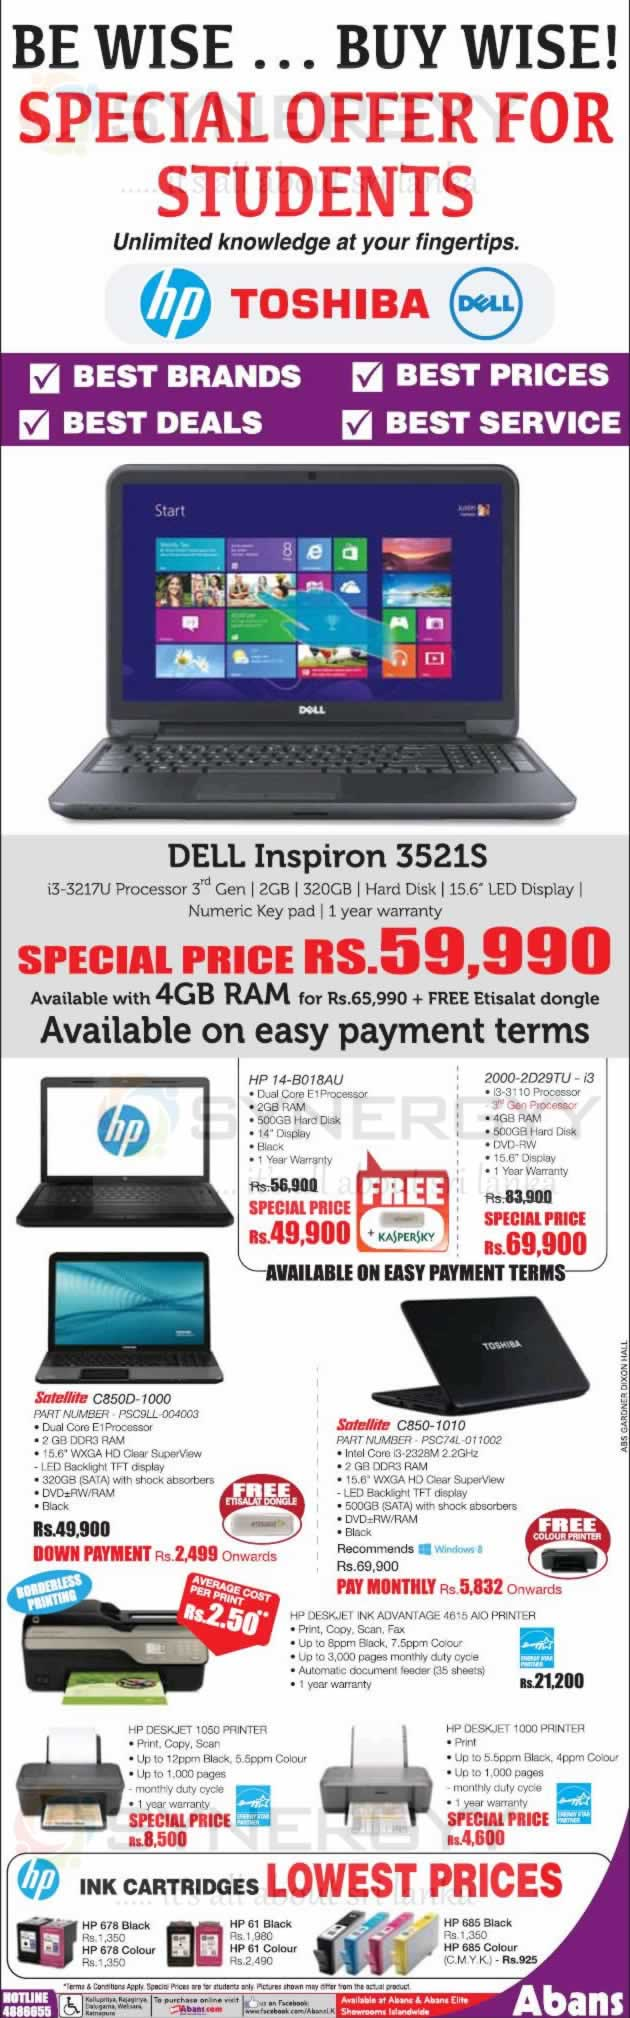 Toshiba Laptops Prices and Promotions in Sri Lanka – SynergyY